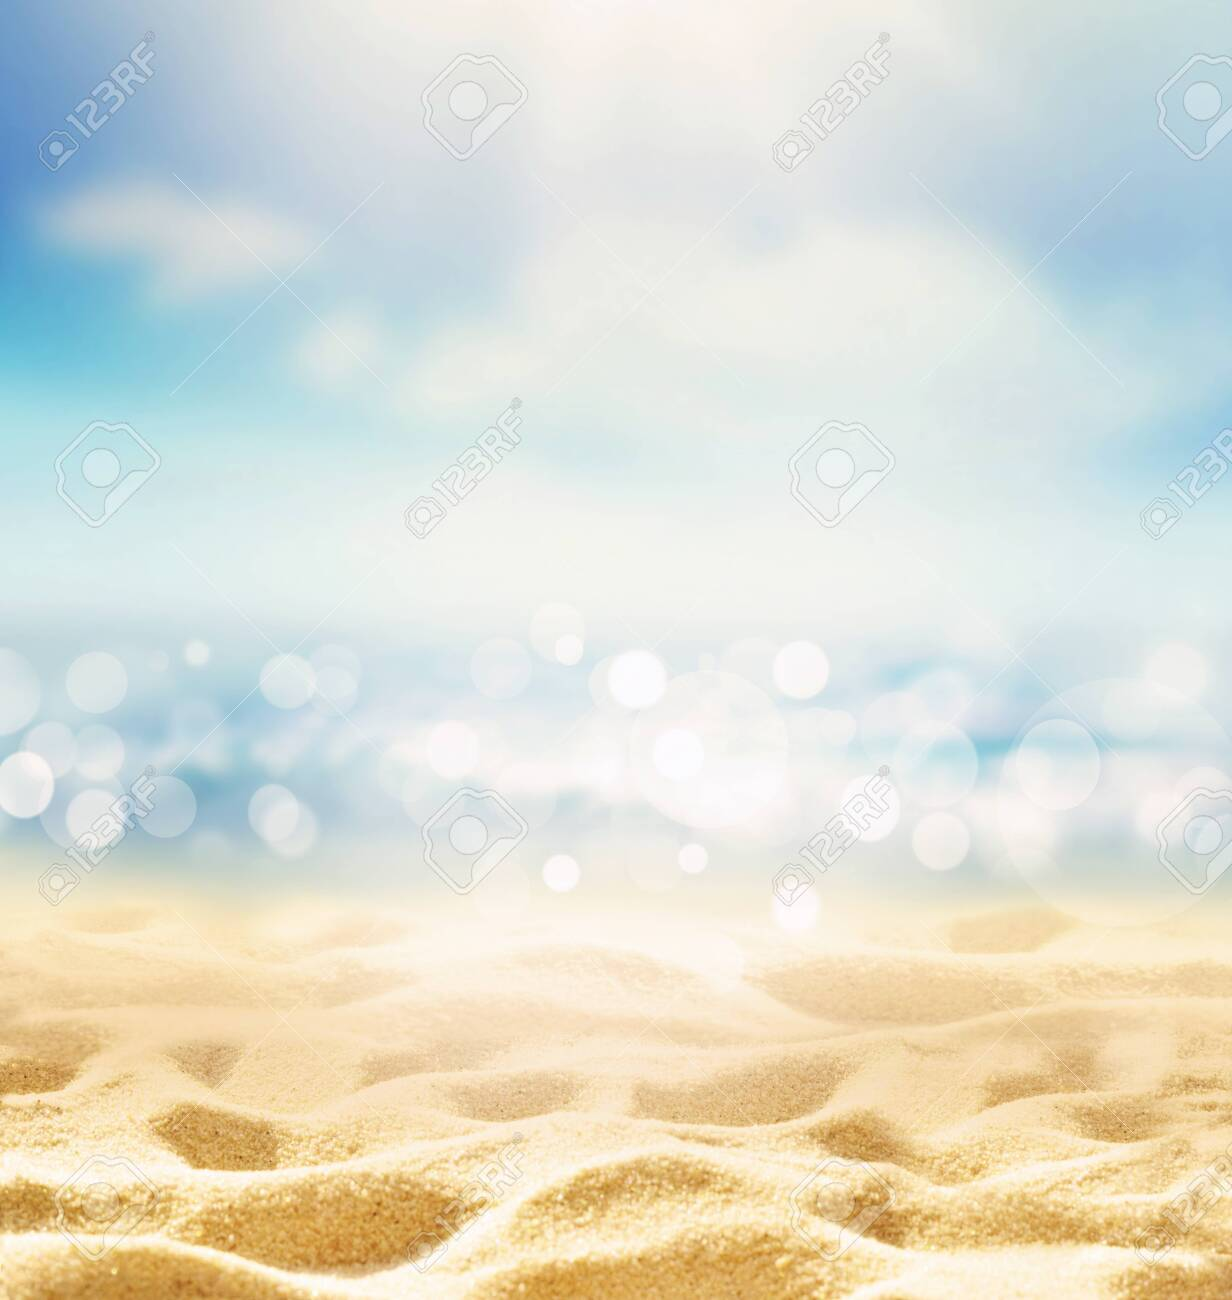 Summer beach background. Sand, sea and sky. Summer concept - 124329305